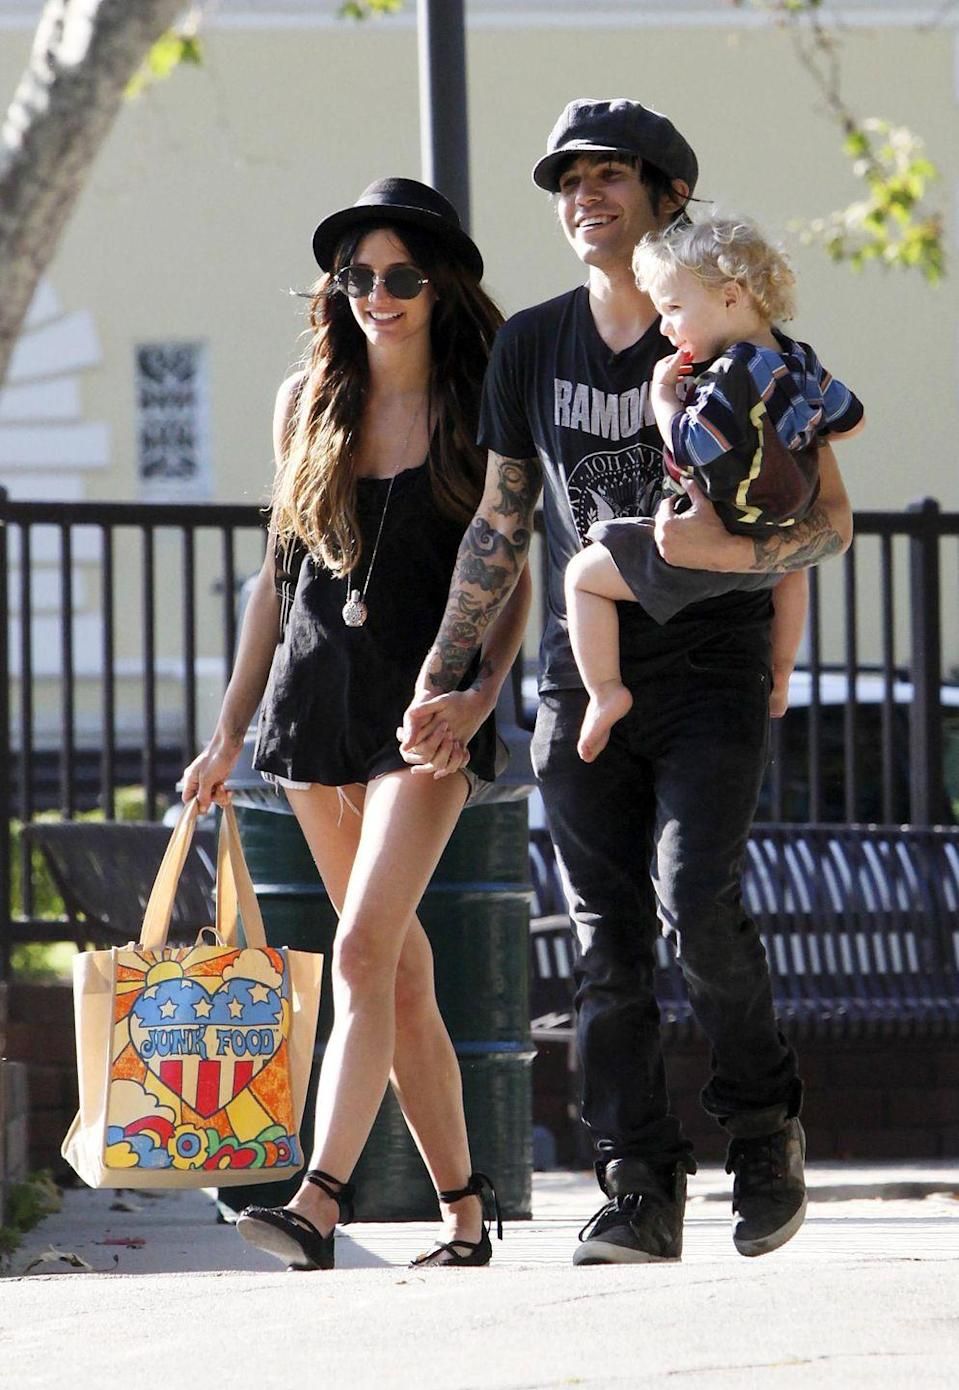 <p>The <em>Fall Out Boy</em> bassist has three children. He and his now ex-wife Ashlee Simpson welcomed their first child Bronx Mowgli in 2008. The rock star also has a second son and a daughter with girlfriend Meagan Camper.</p>